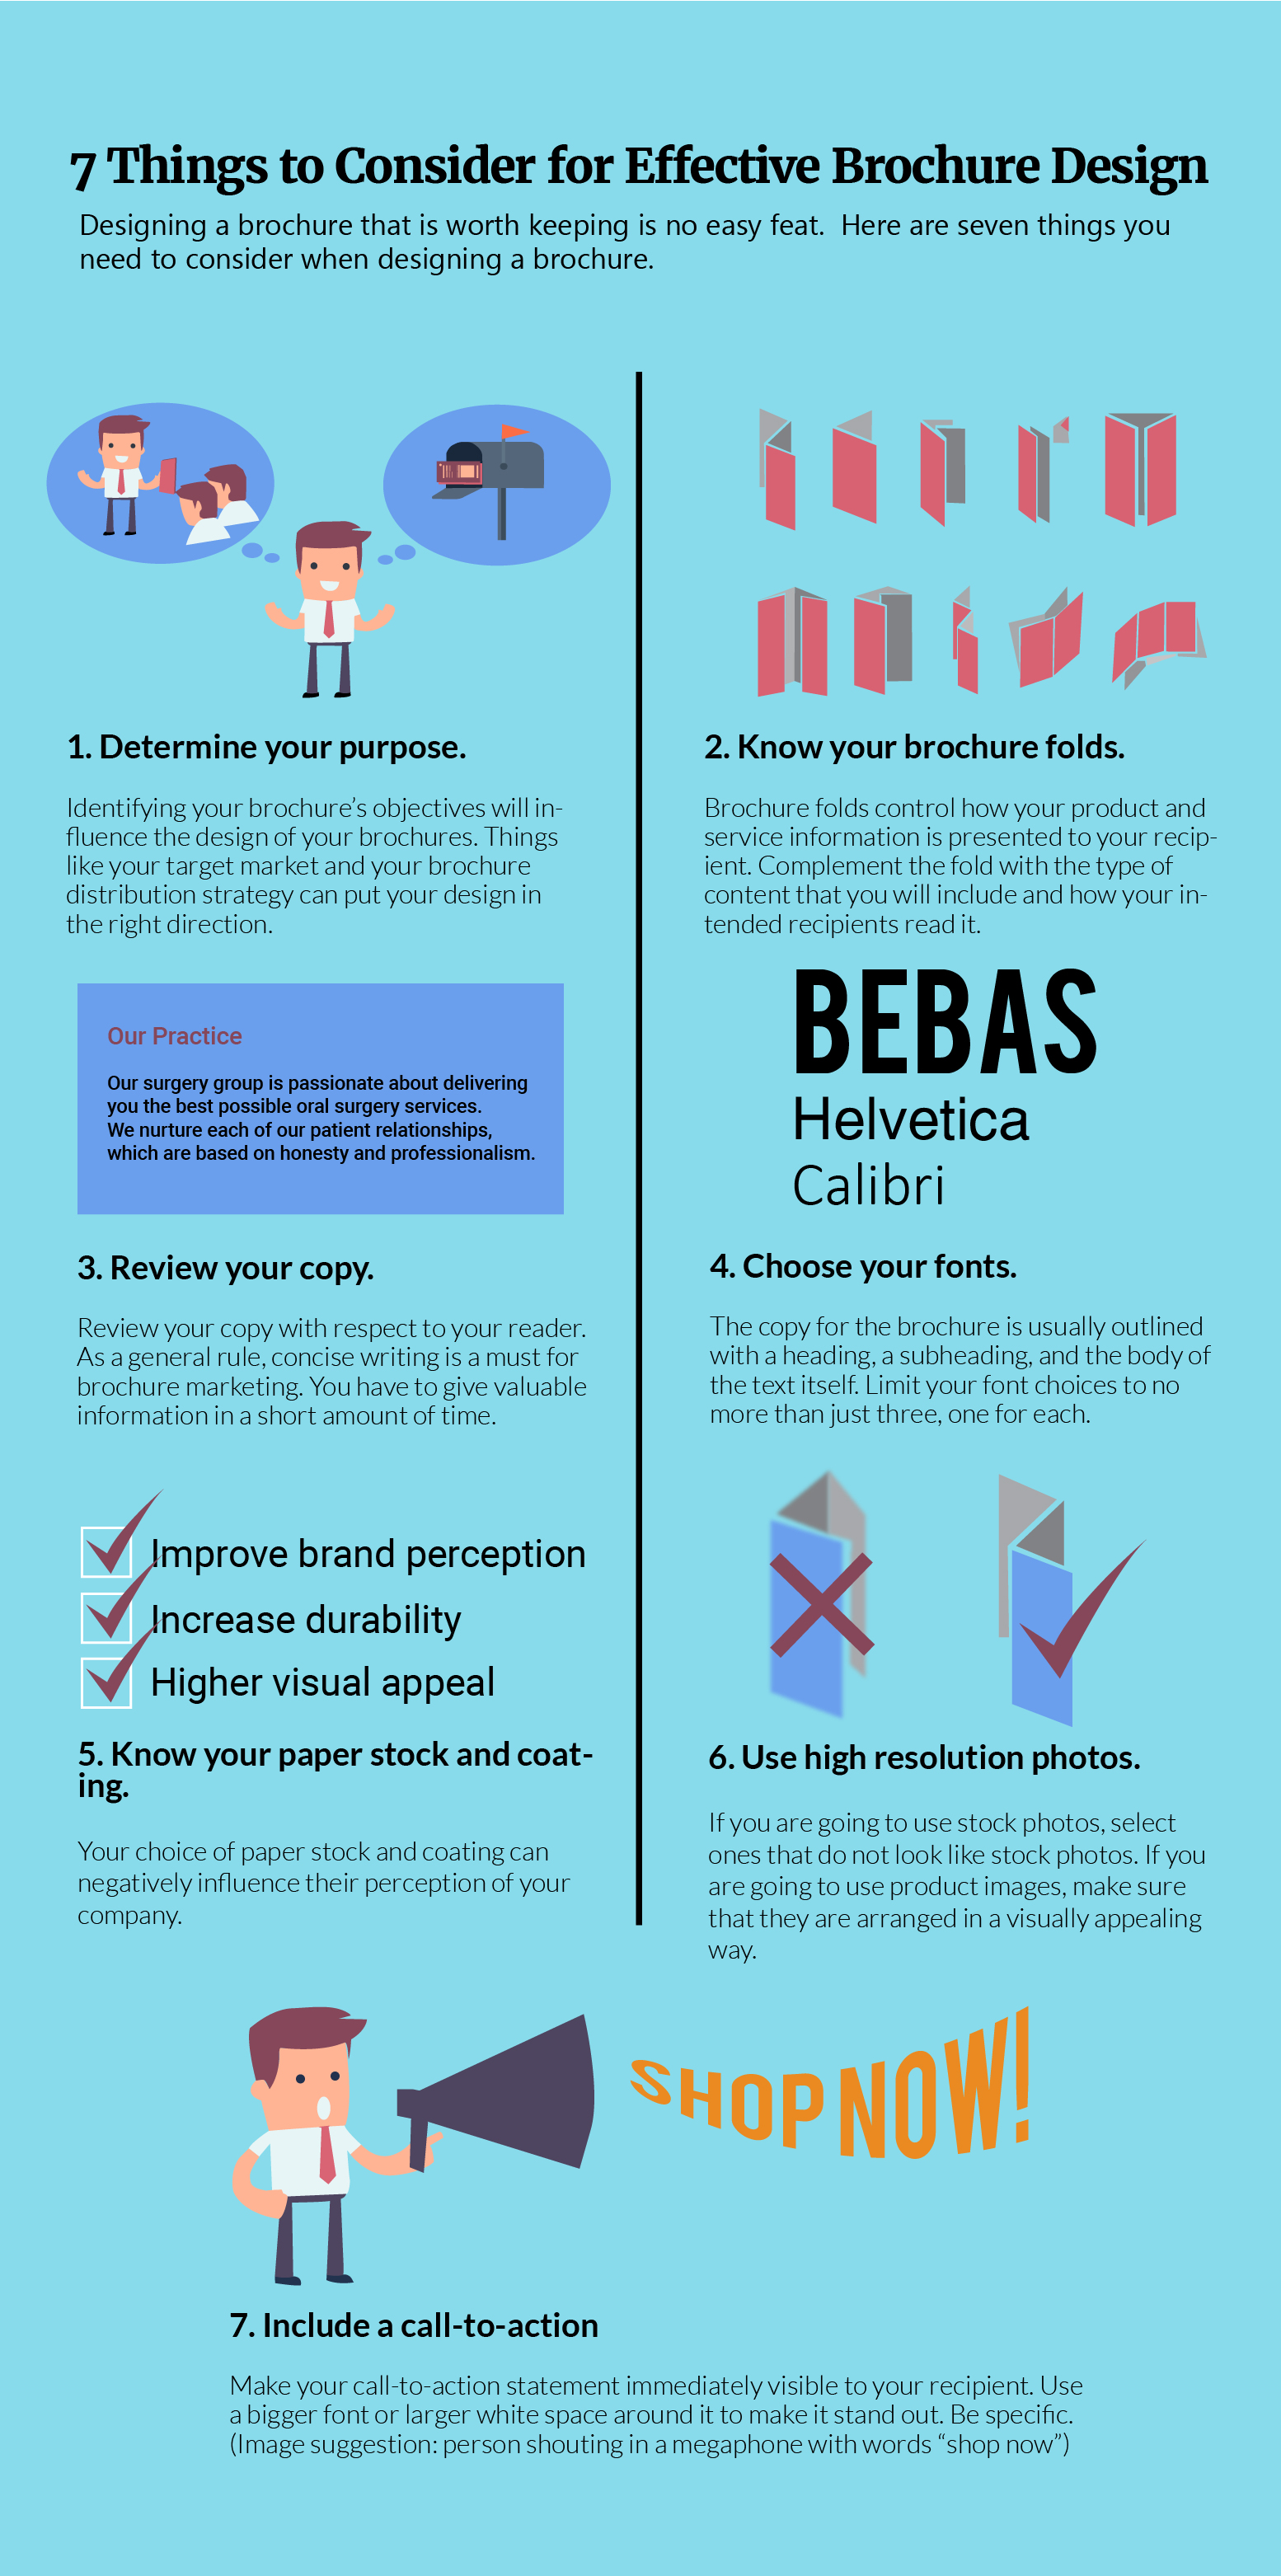 7 Things to Consider for Effective Brochure Design Infographic